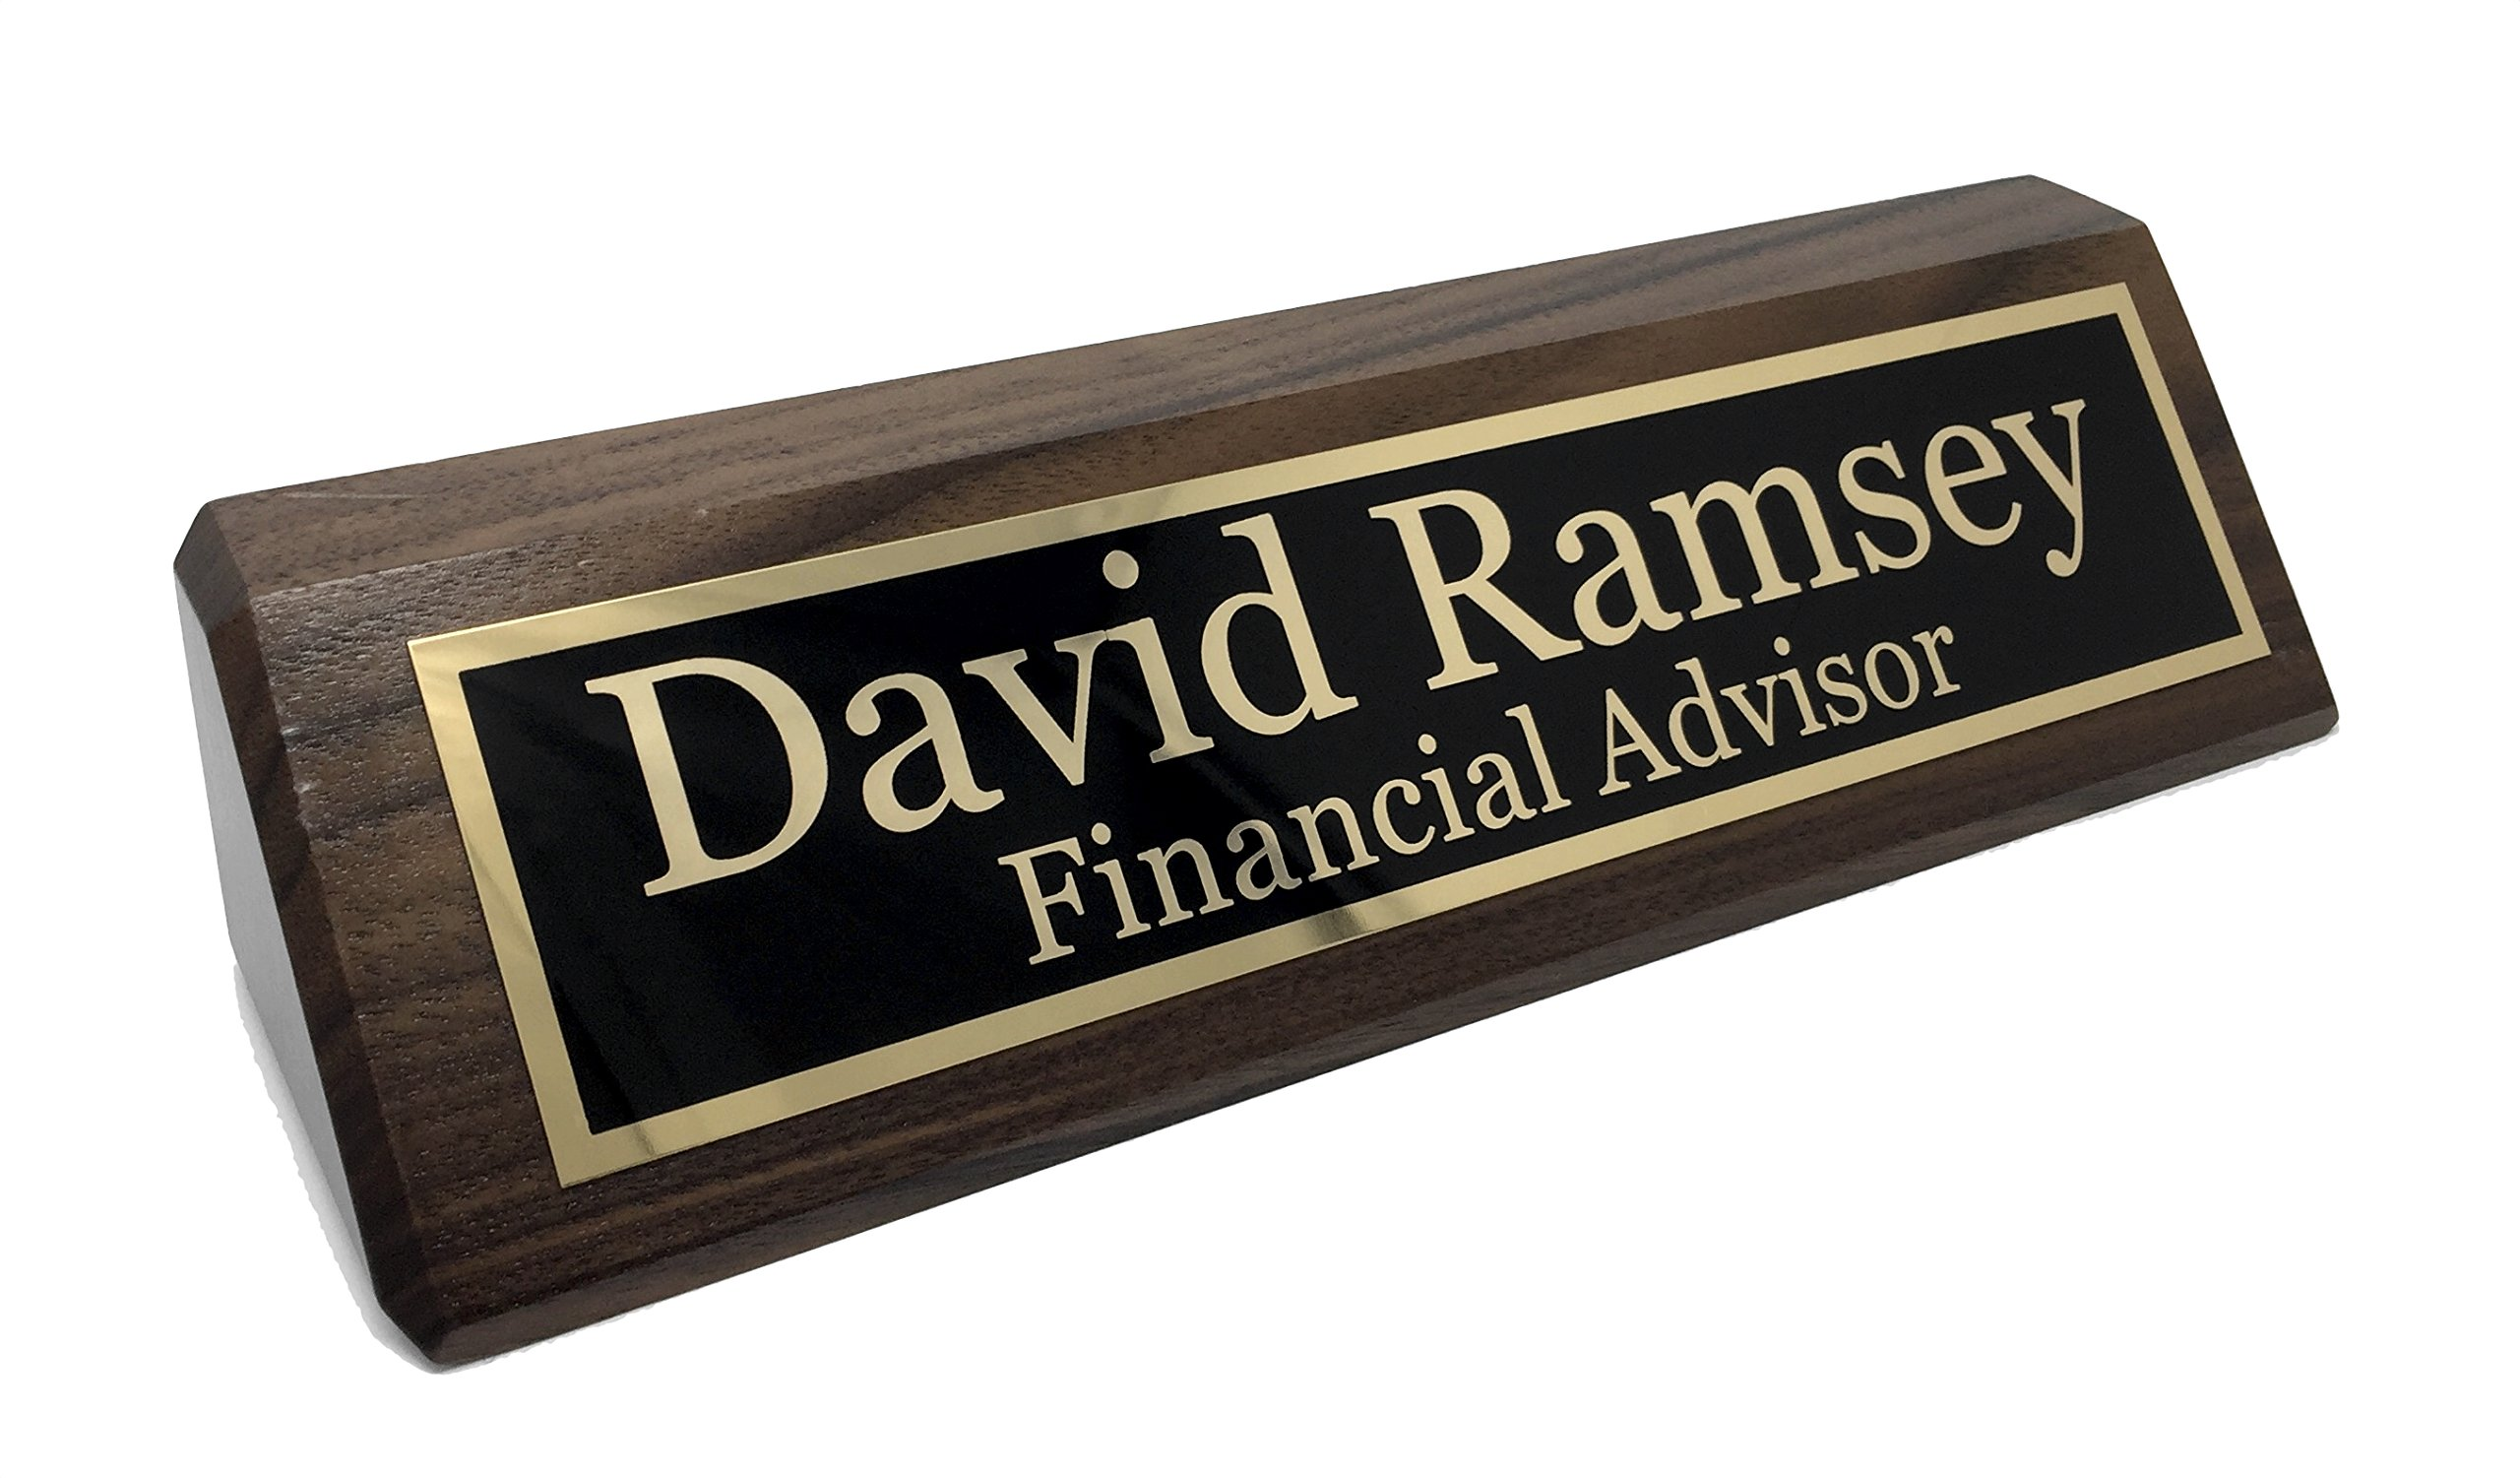 Personalized Desk Name Plate - Walnut - Free Engraving by Griffco (Image #2)